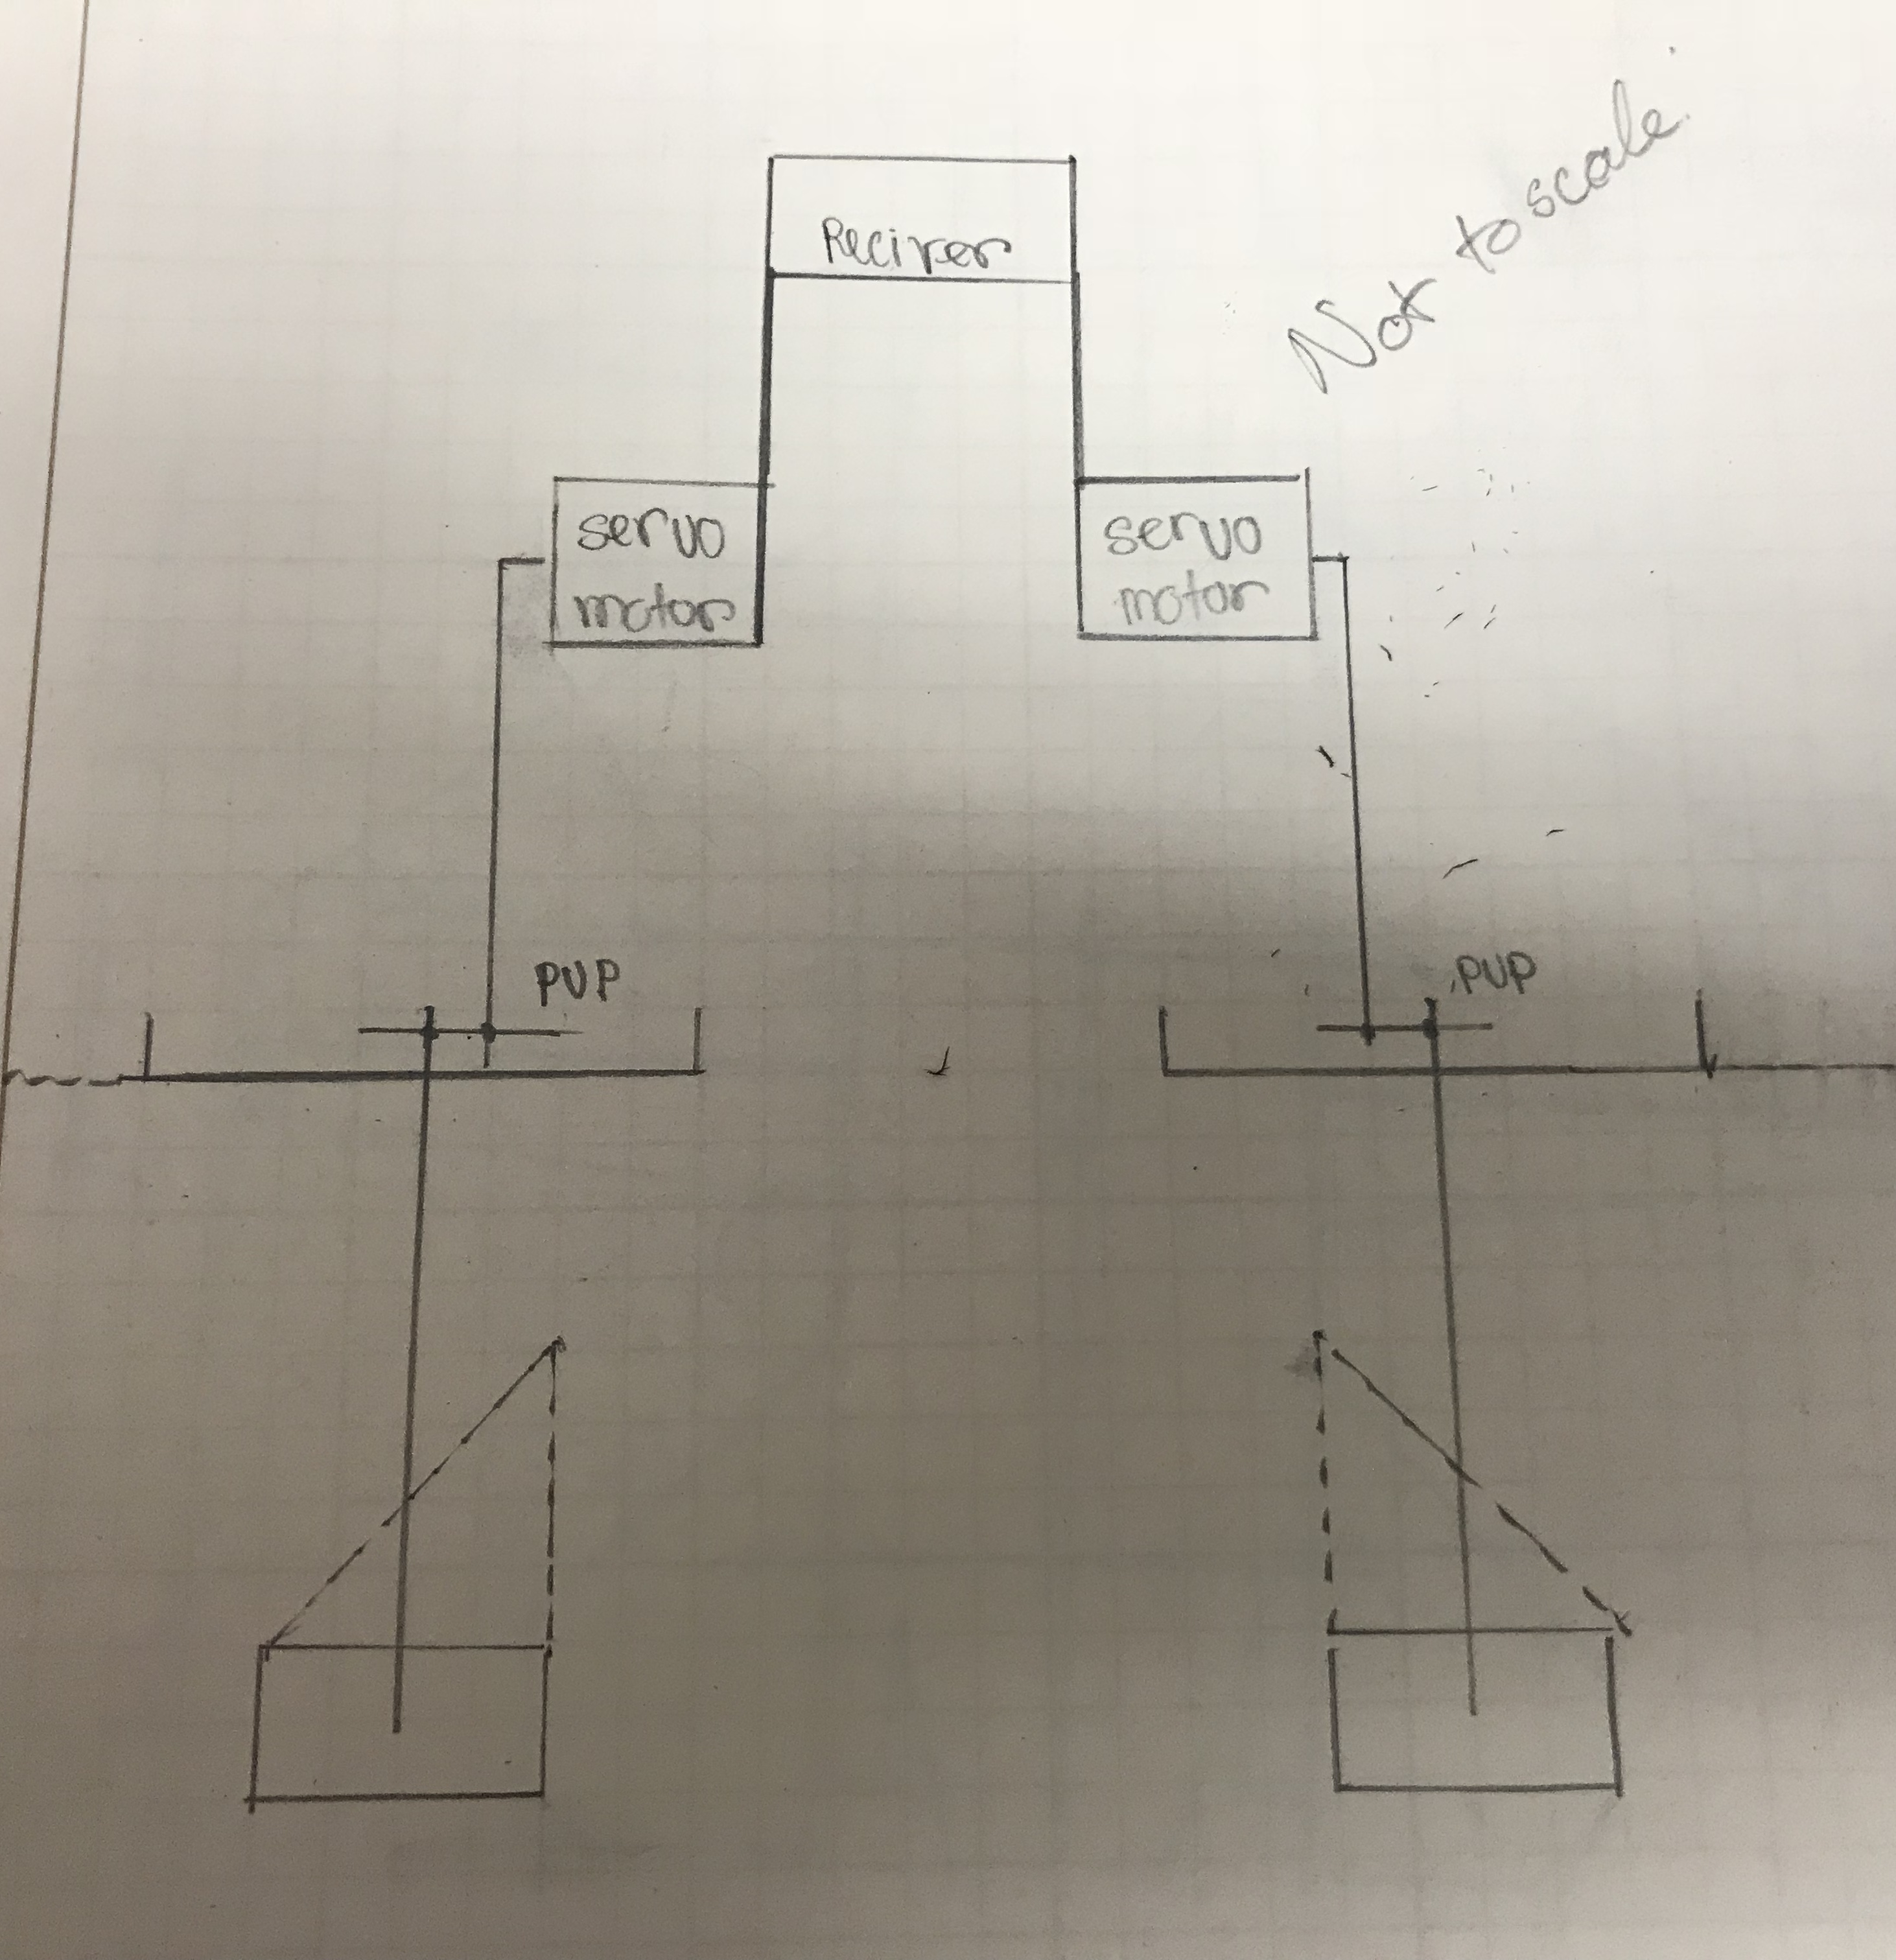 Picture of Set Up Control Rod